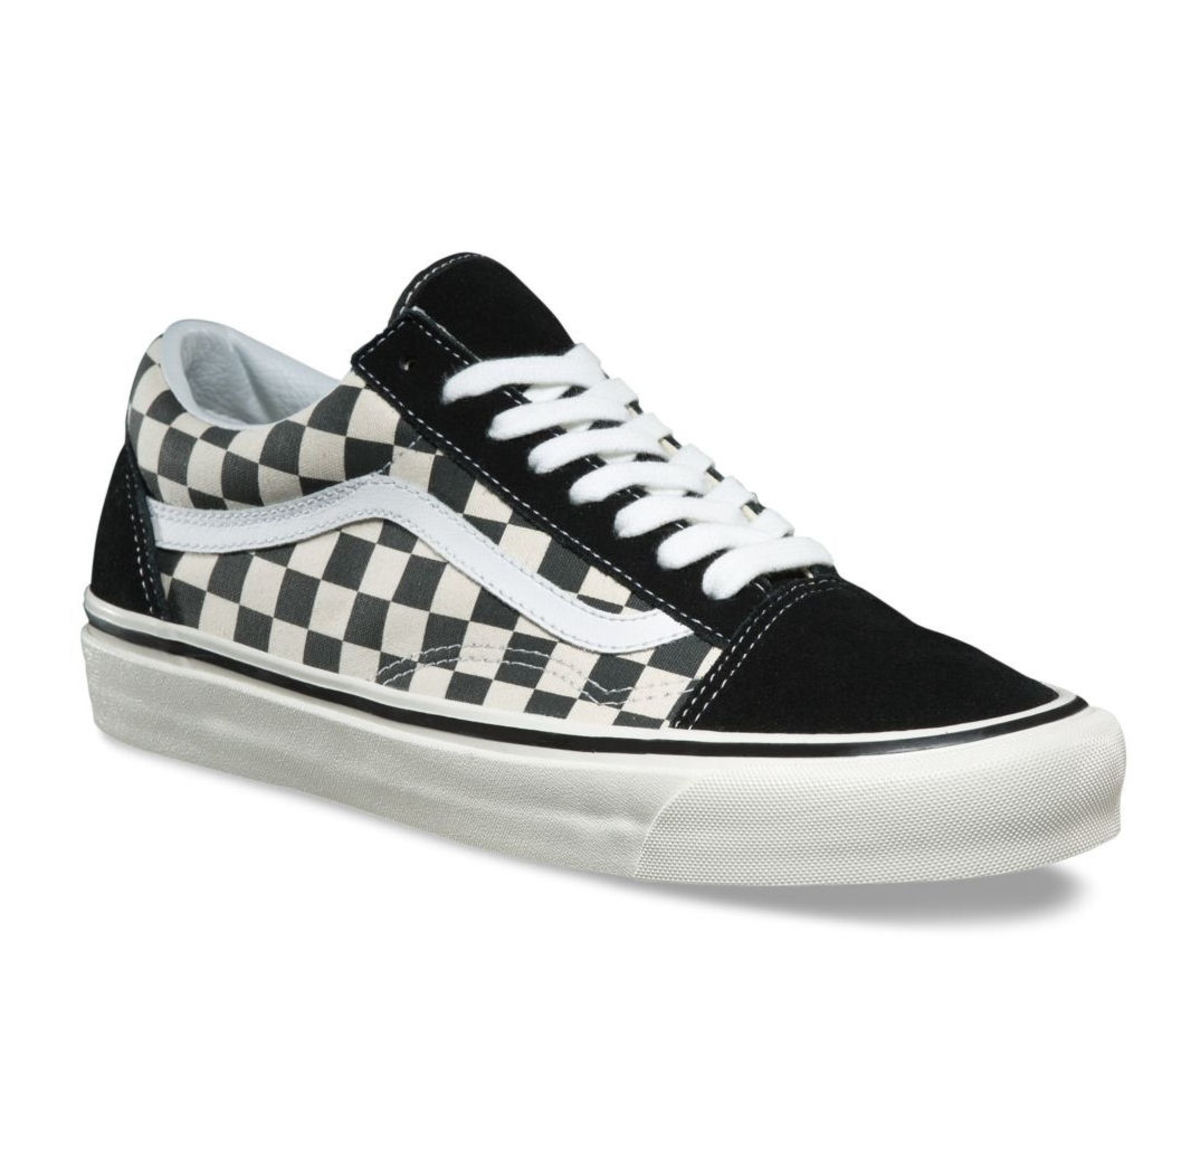 6bf009889 boty VANS - UA Old Skool (PRIMARY CHECK)- Blk/Wht - VN0A38G1P0S1 ...